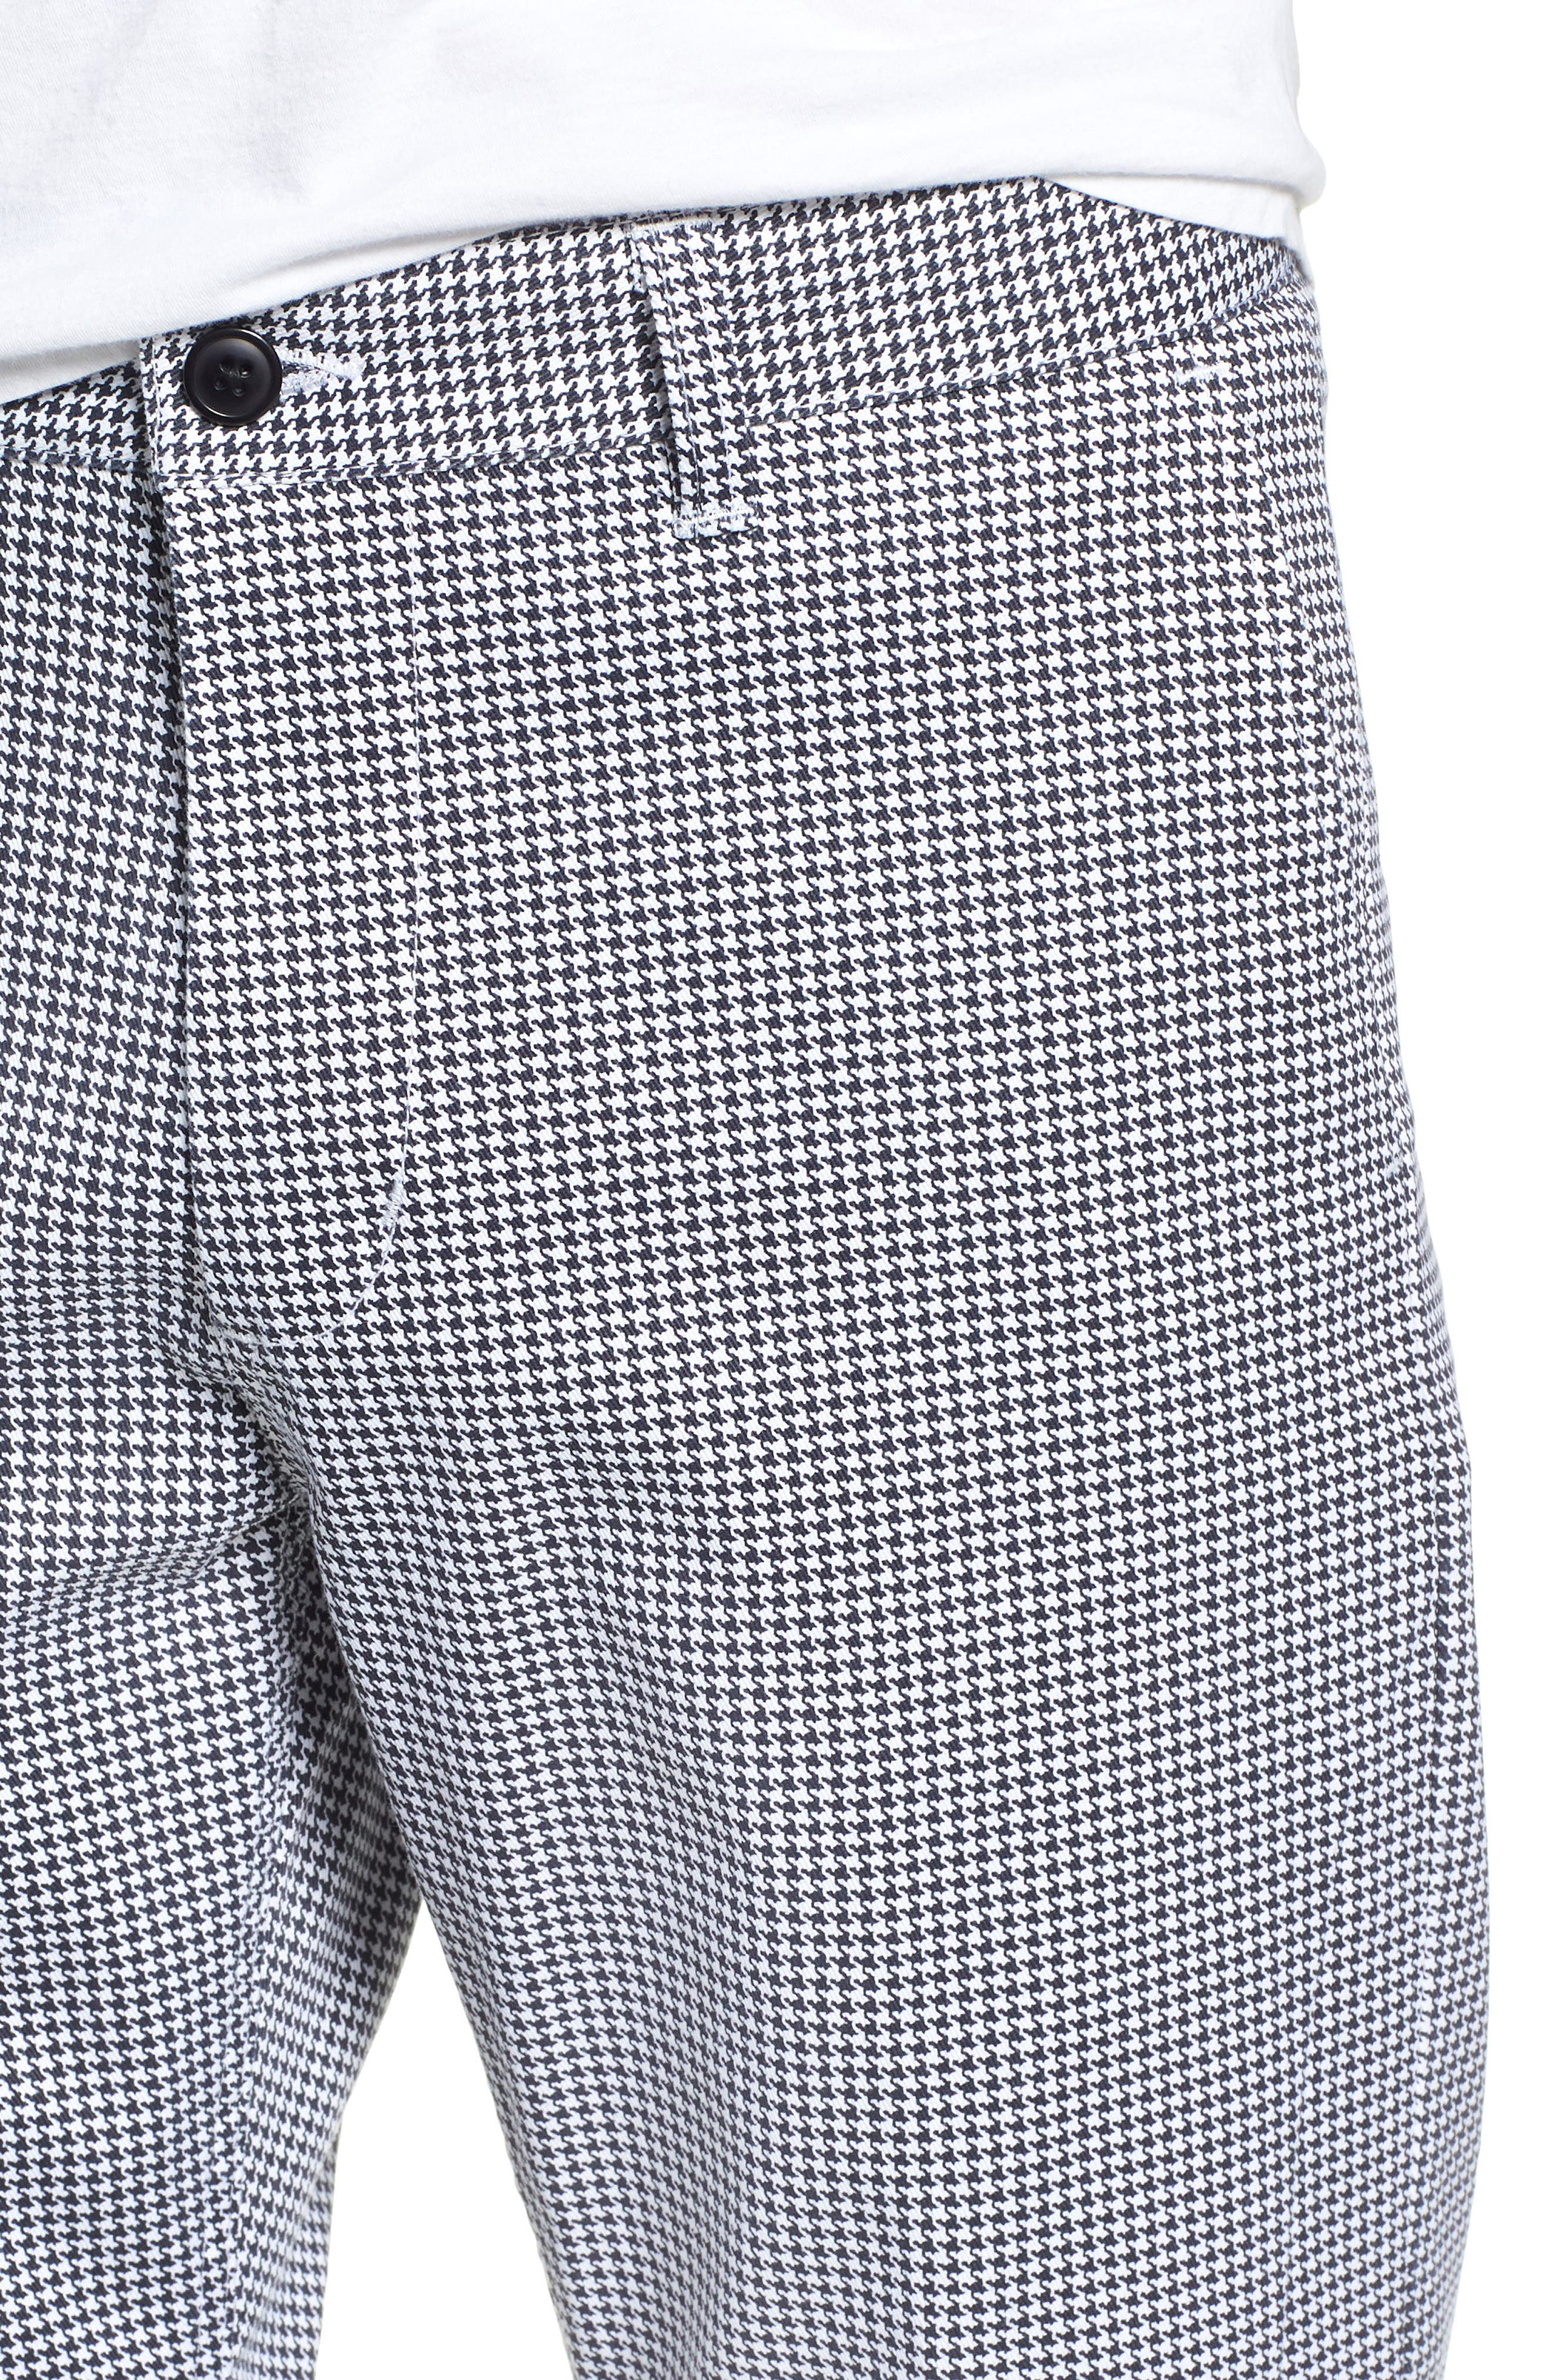 Relaxed Fit Houndstooth Cropped Pants,                             Alternate thumbnail 4, color,                             WHITE MULTI